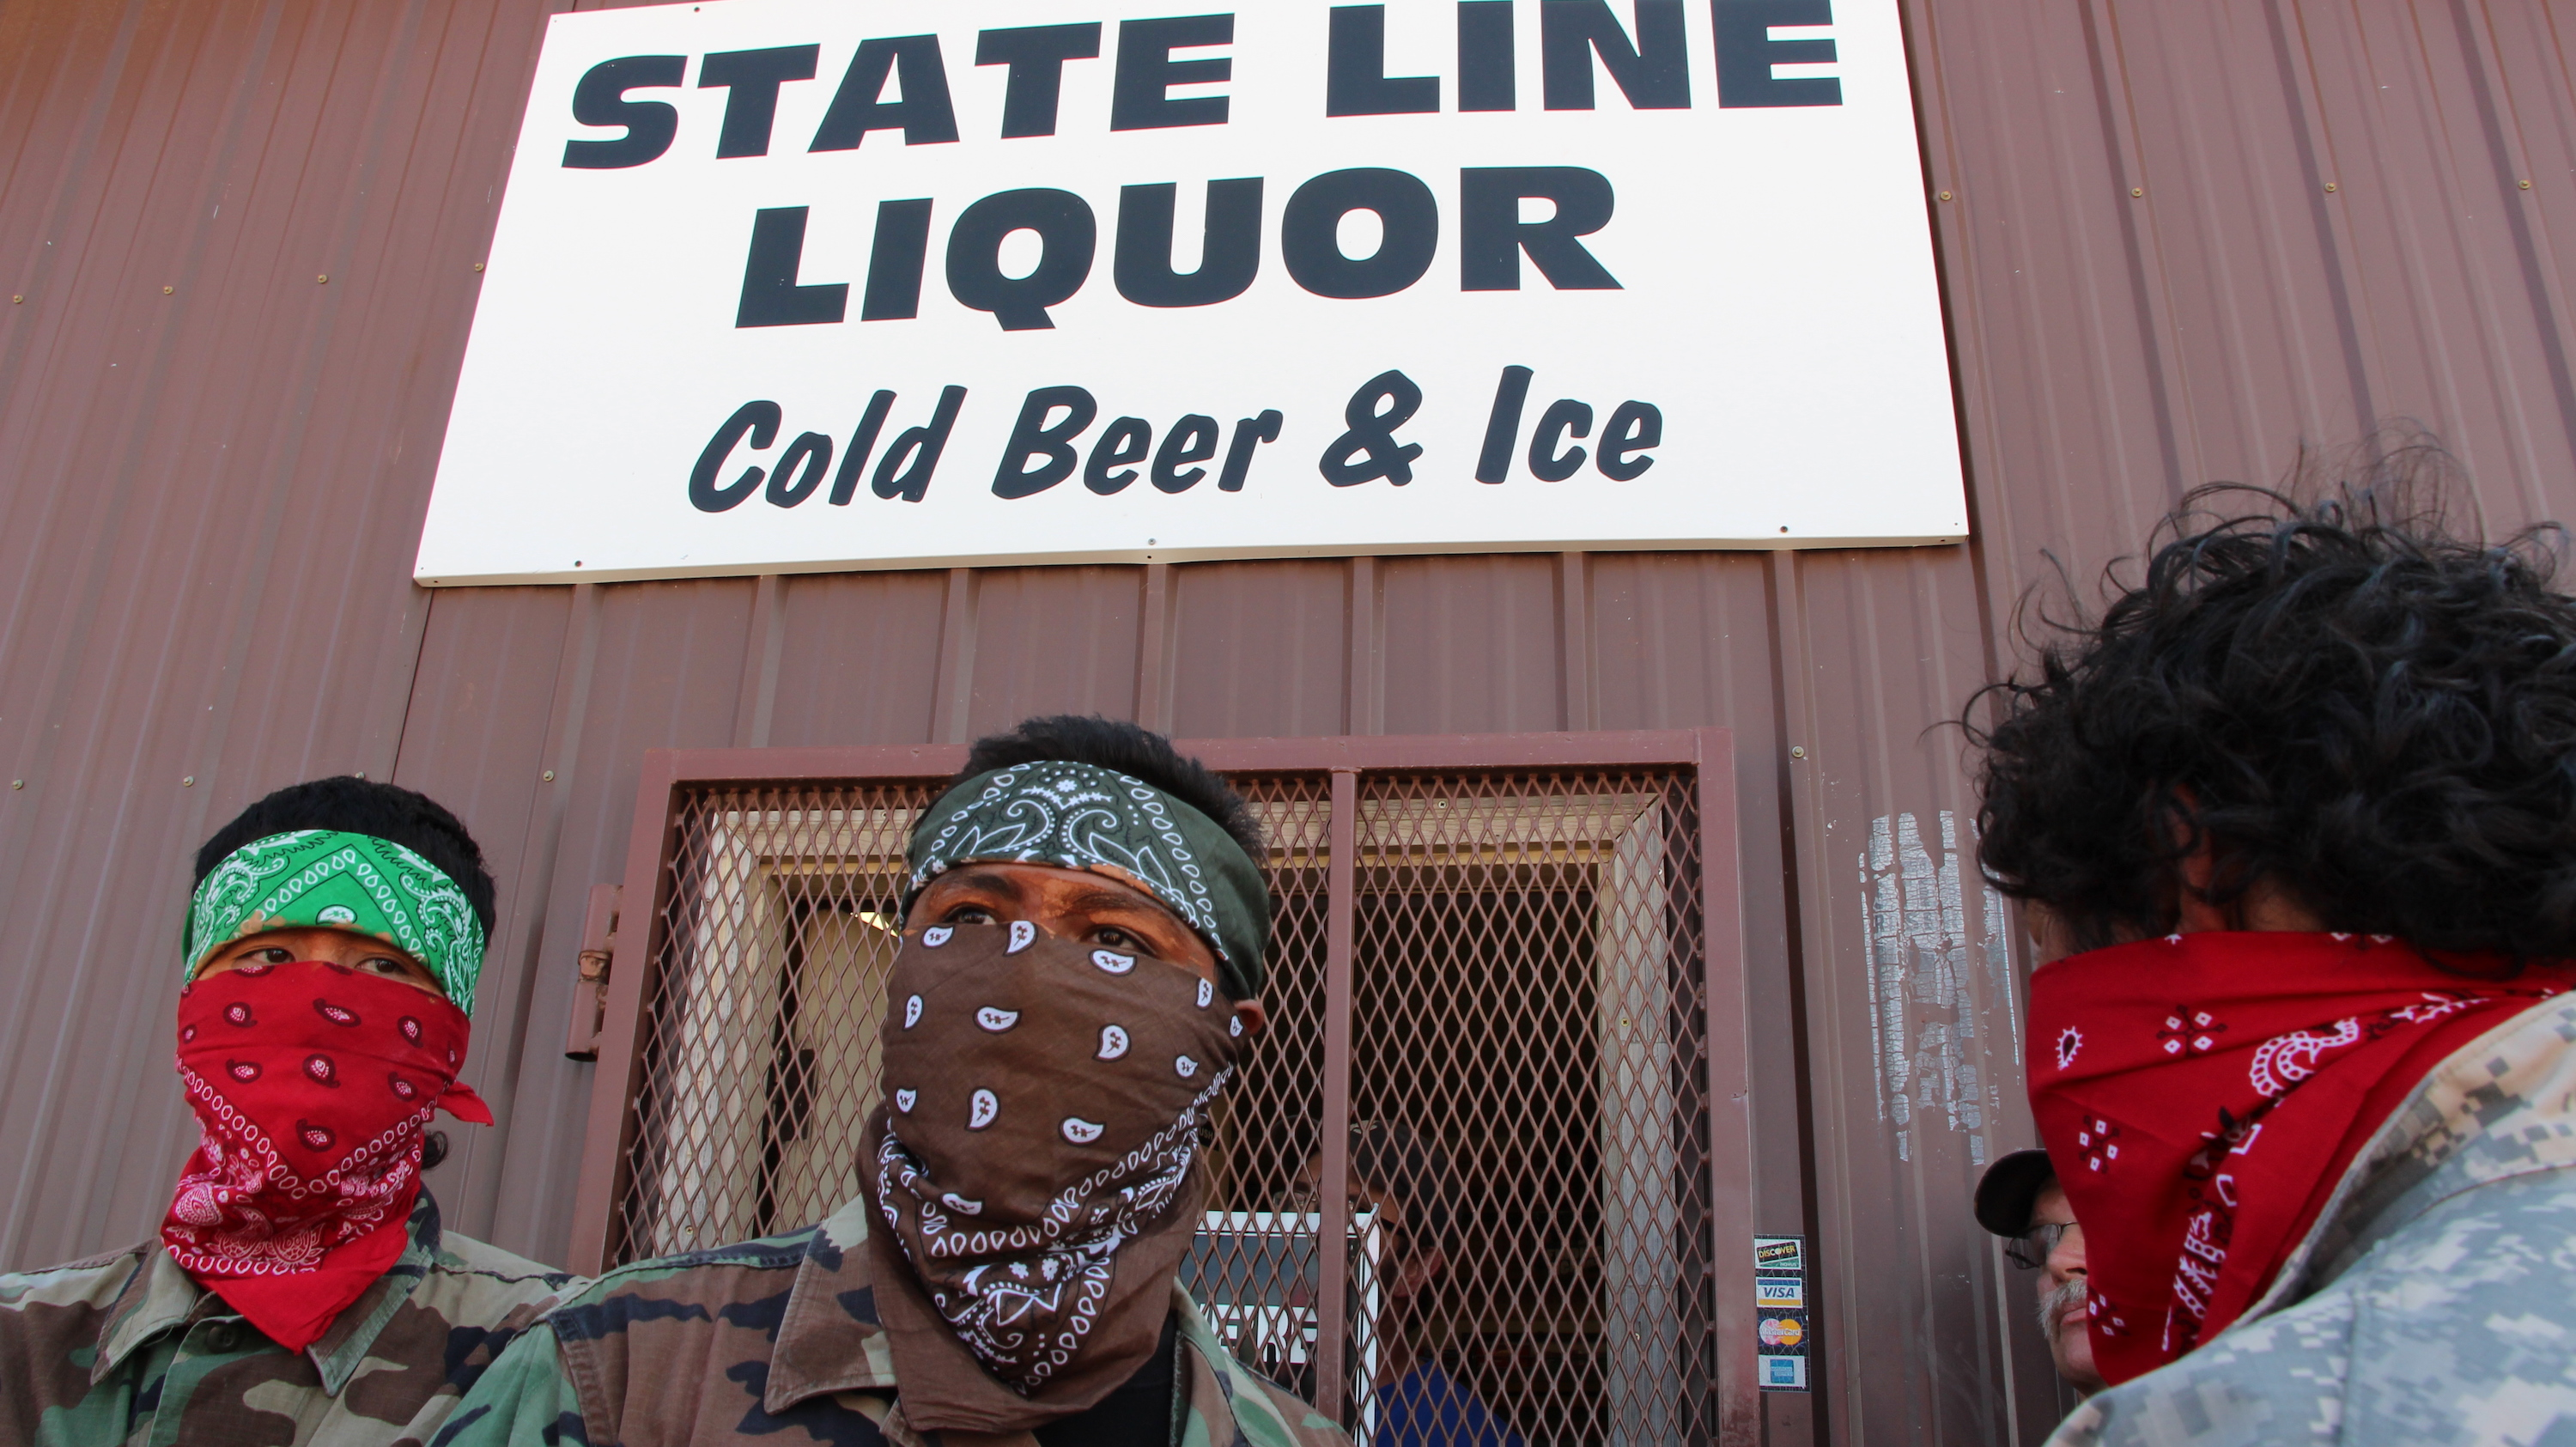 Liquor stores in Pine Ridge Reservation border town ask court for ruling to reopen